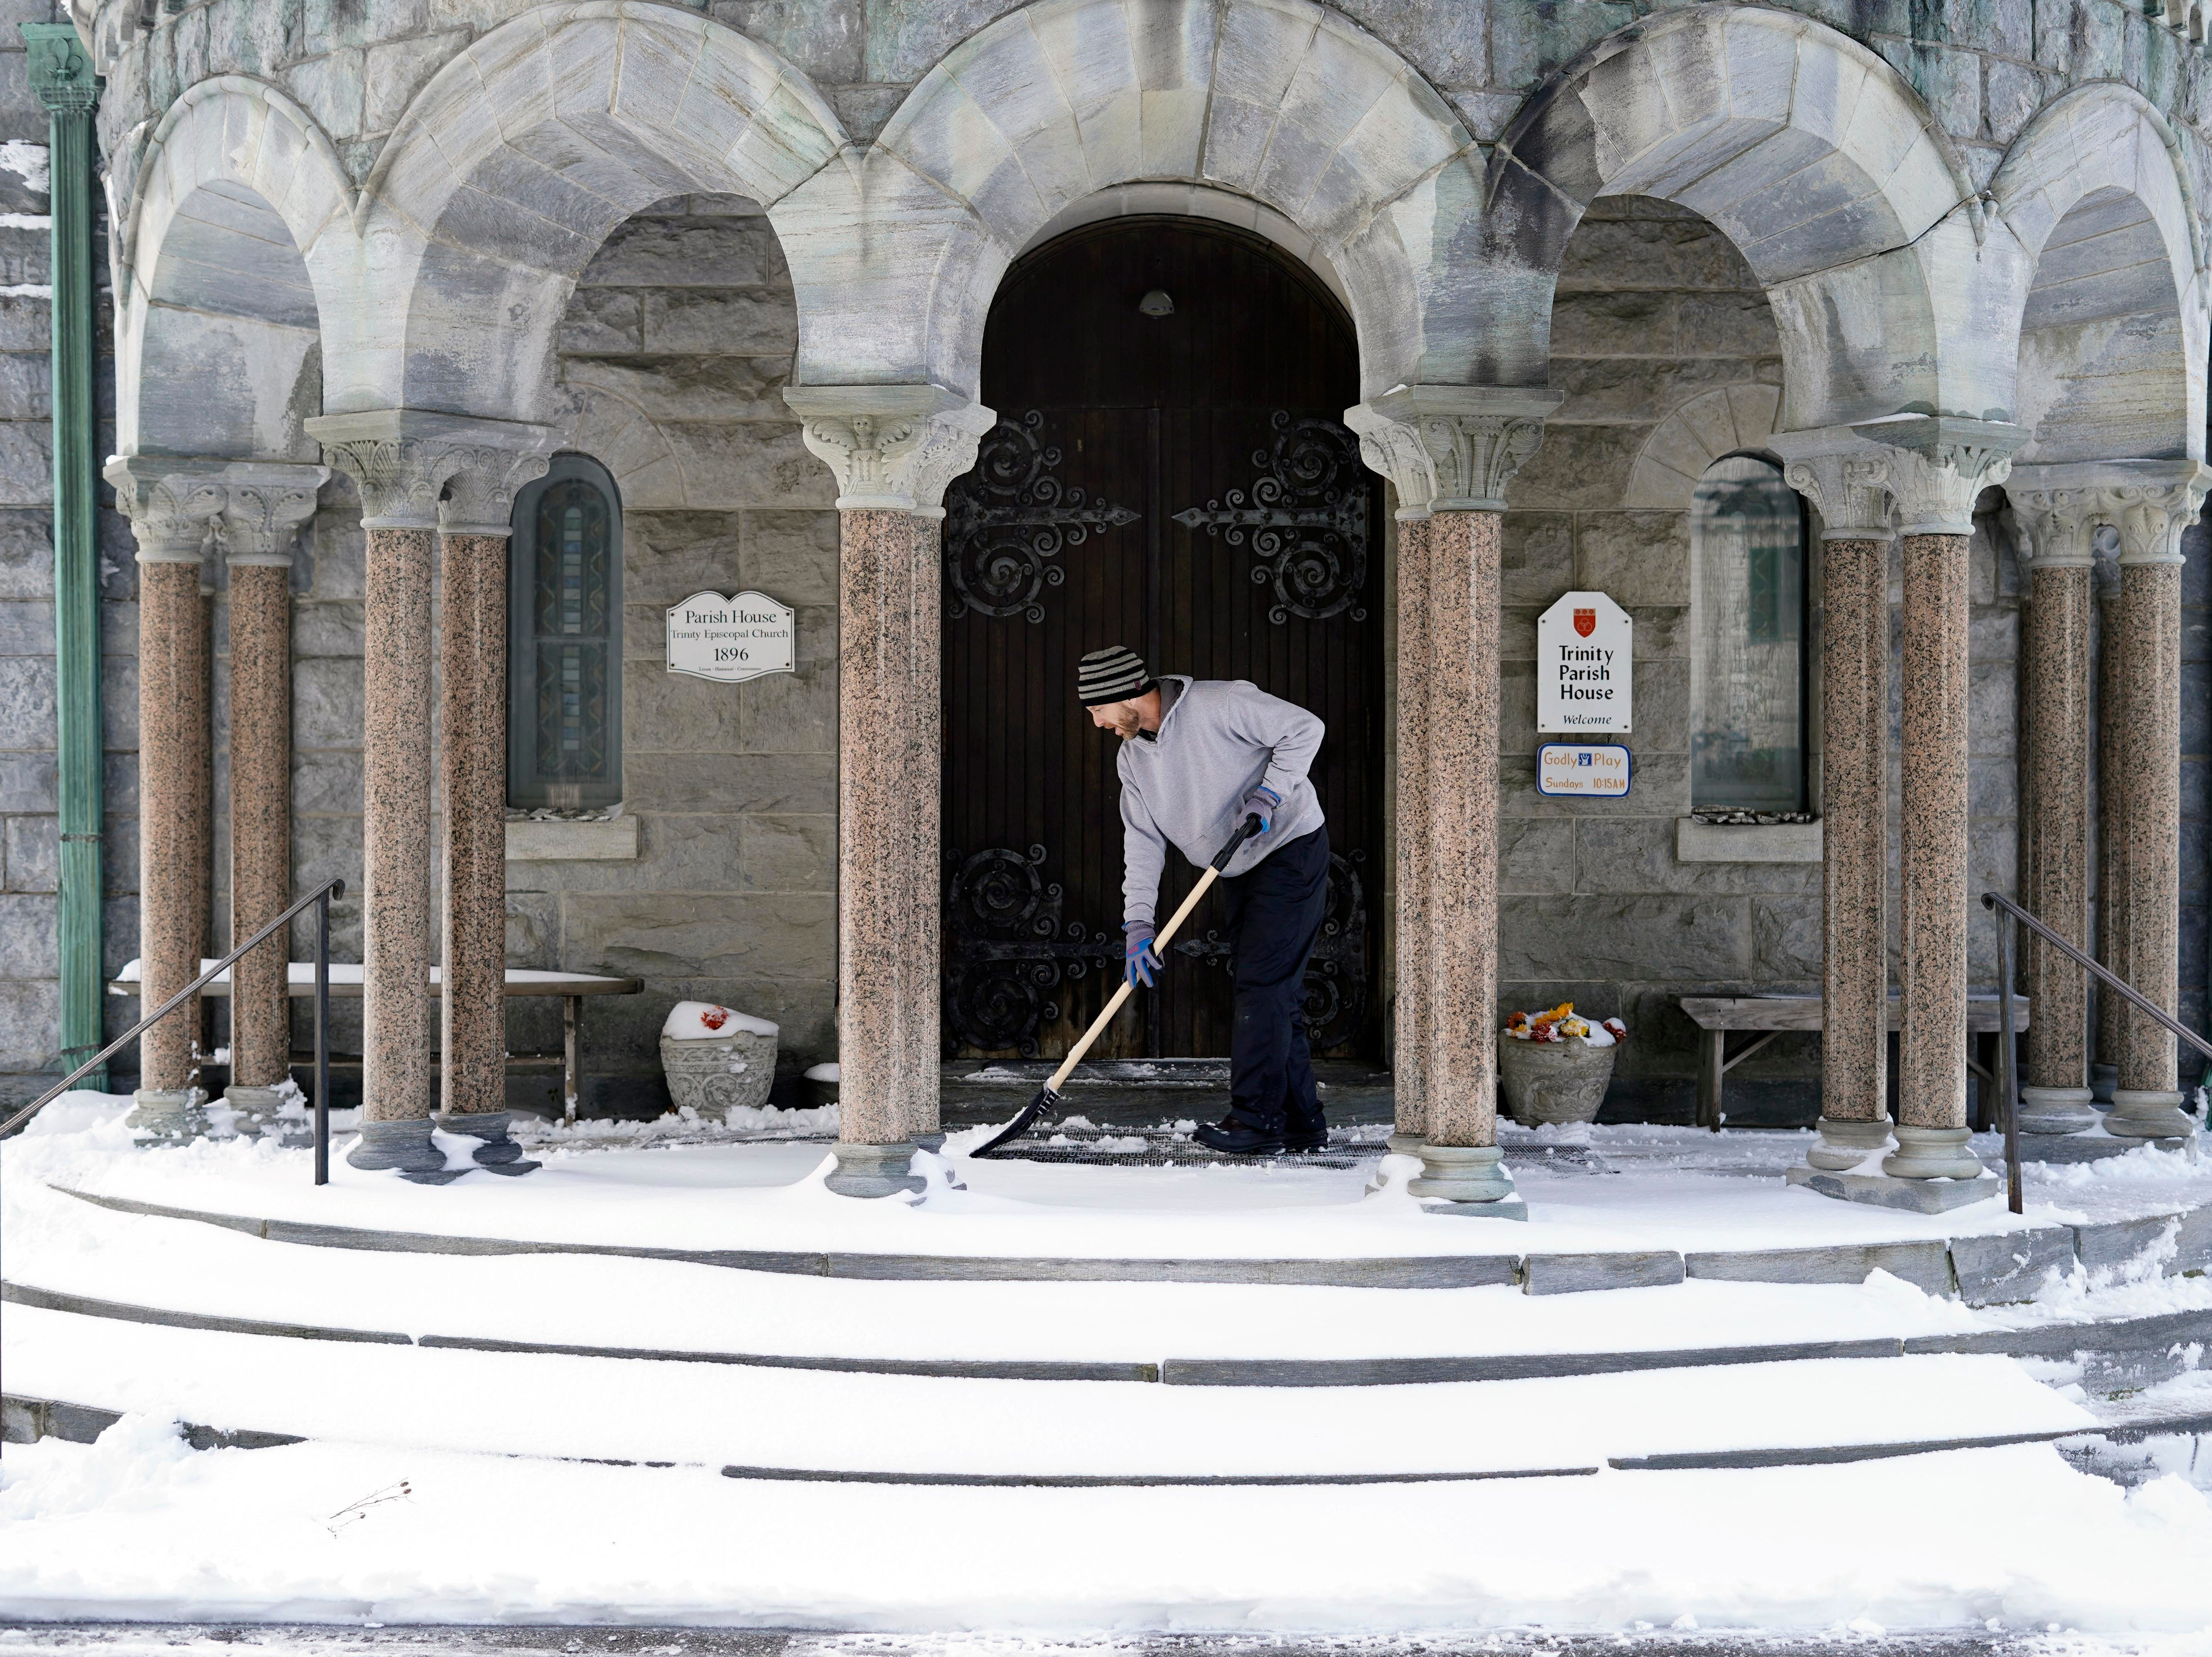 Chris Brown clears snow from the entrance of the Trinity Parish House in Lenox, Mass., Friday, Nov. 16, 2018. The first snowstorm of the season caused minor delays in Western Massachusetts.